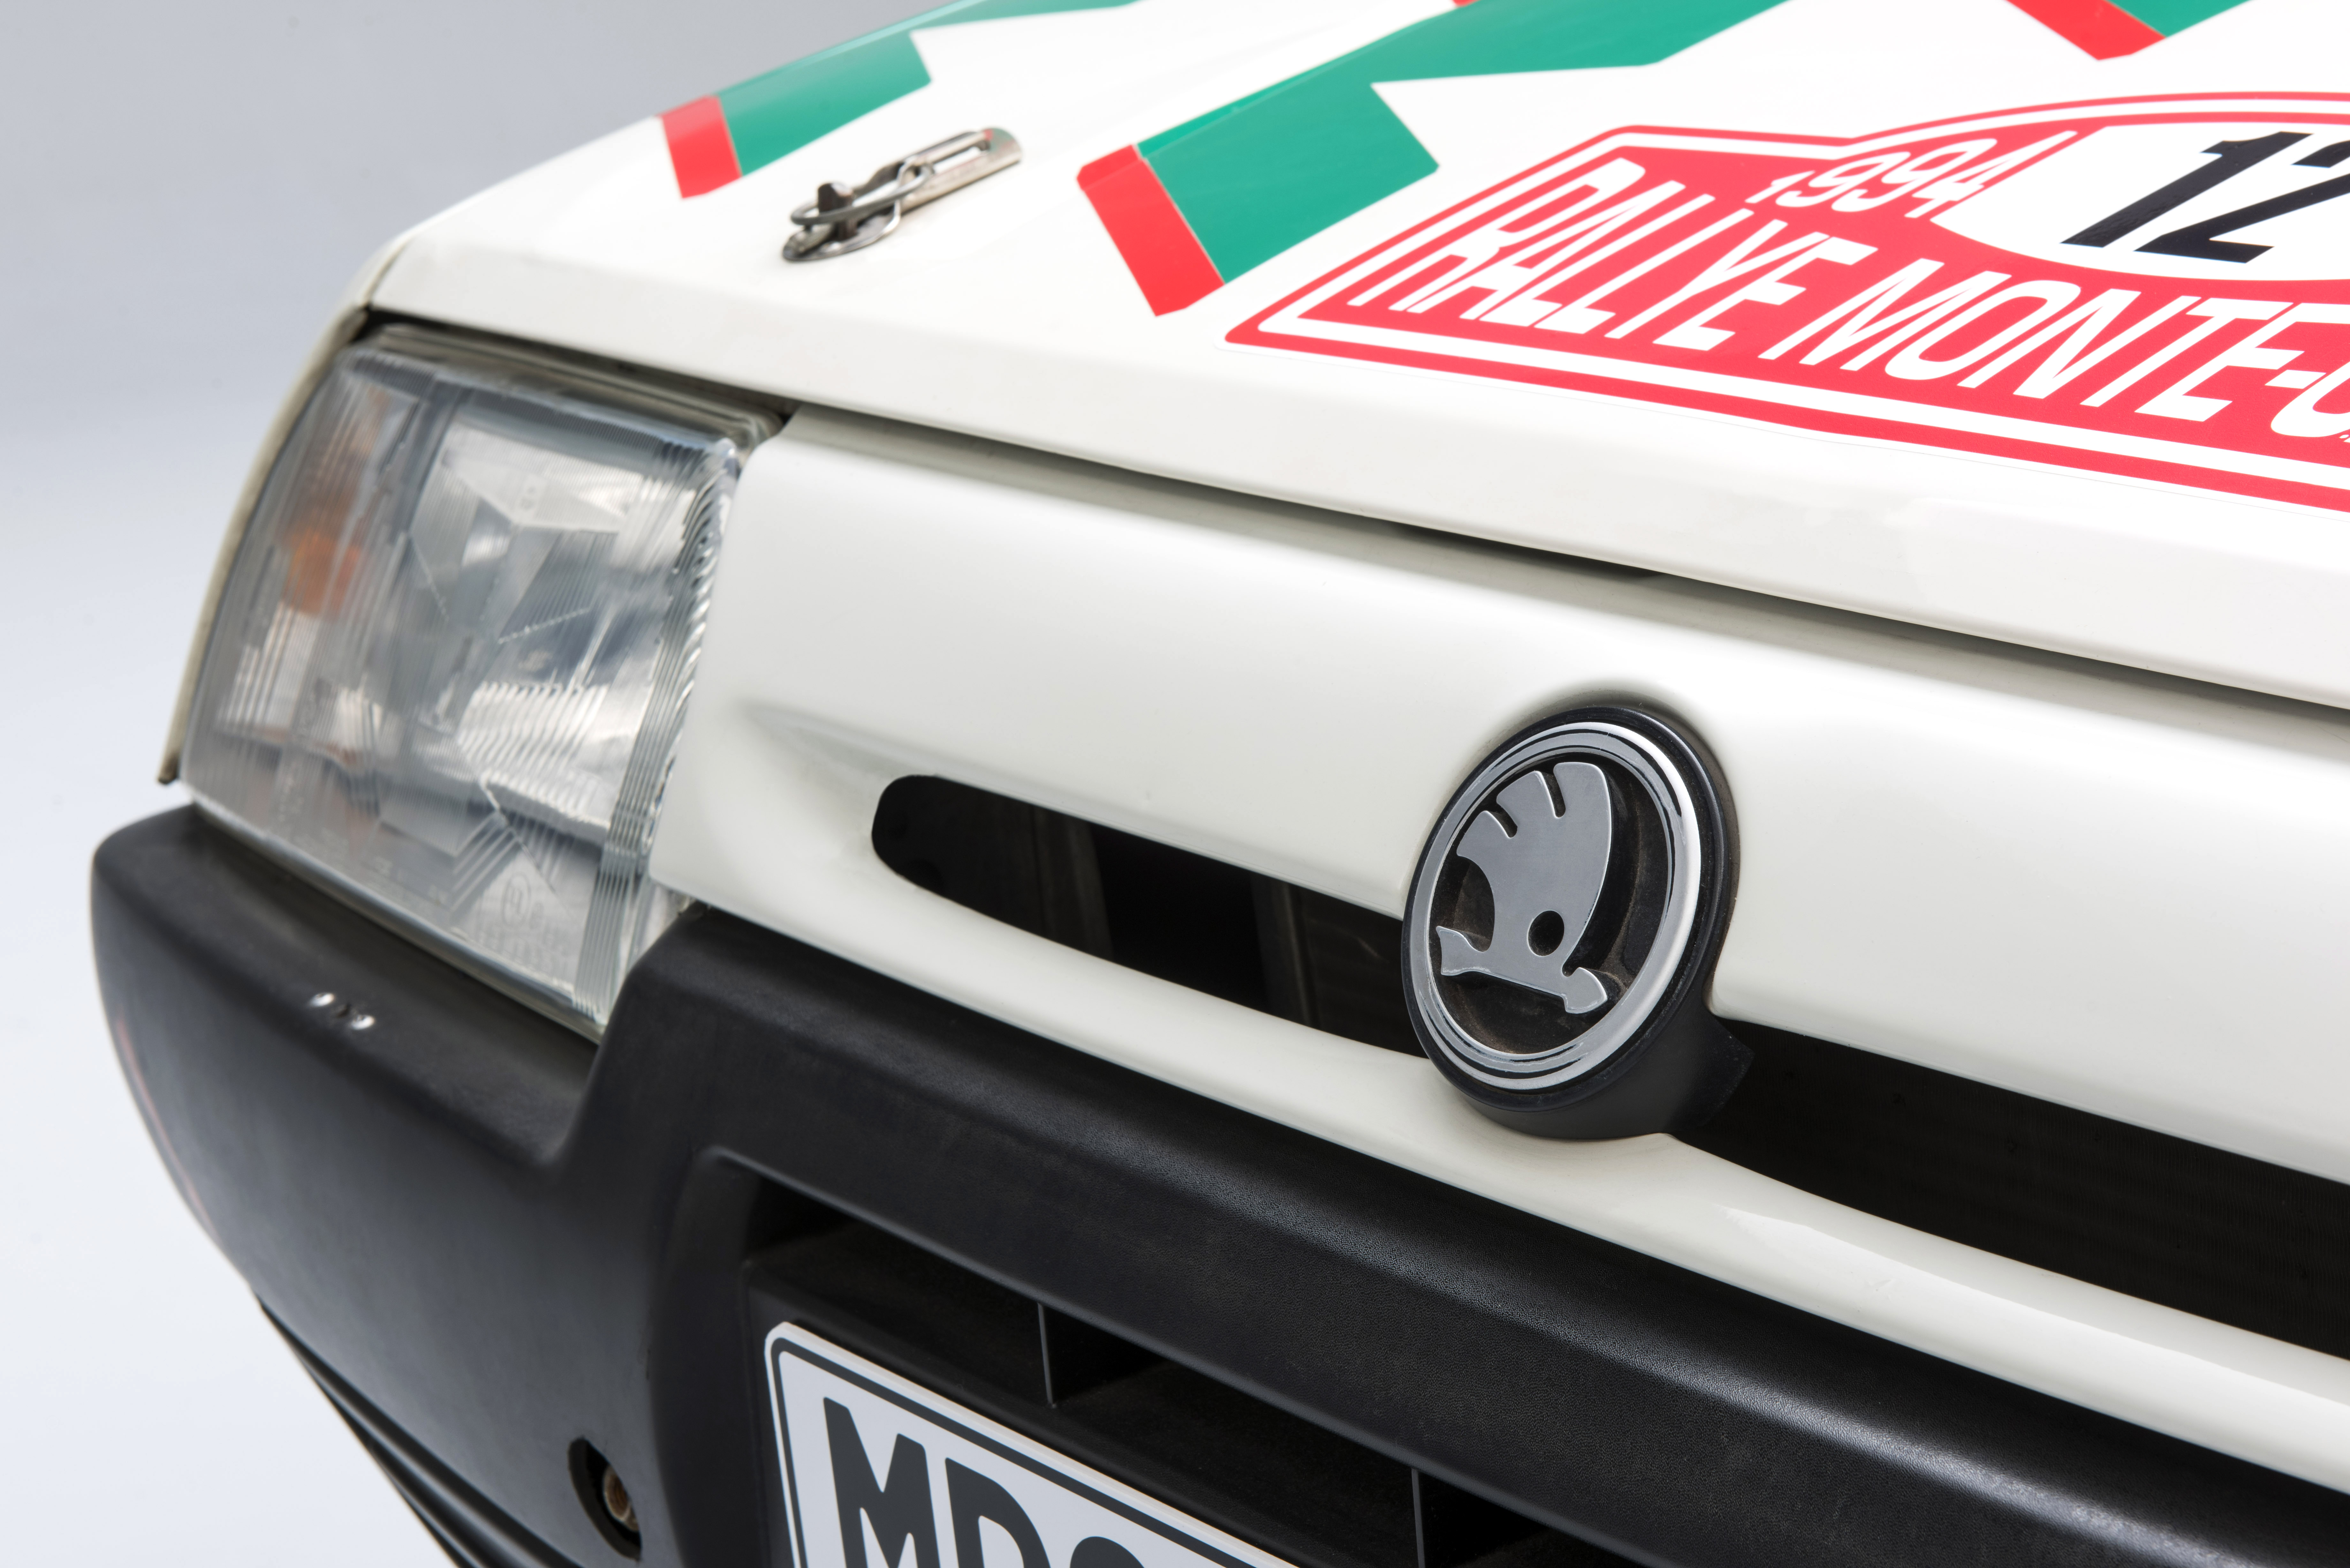 Motorsport versions of the SKODA FAVORIT (1989): All different – and yet familiar - Image 2